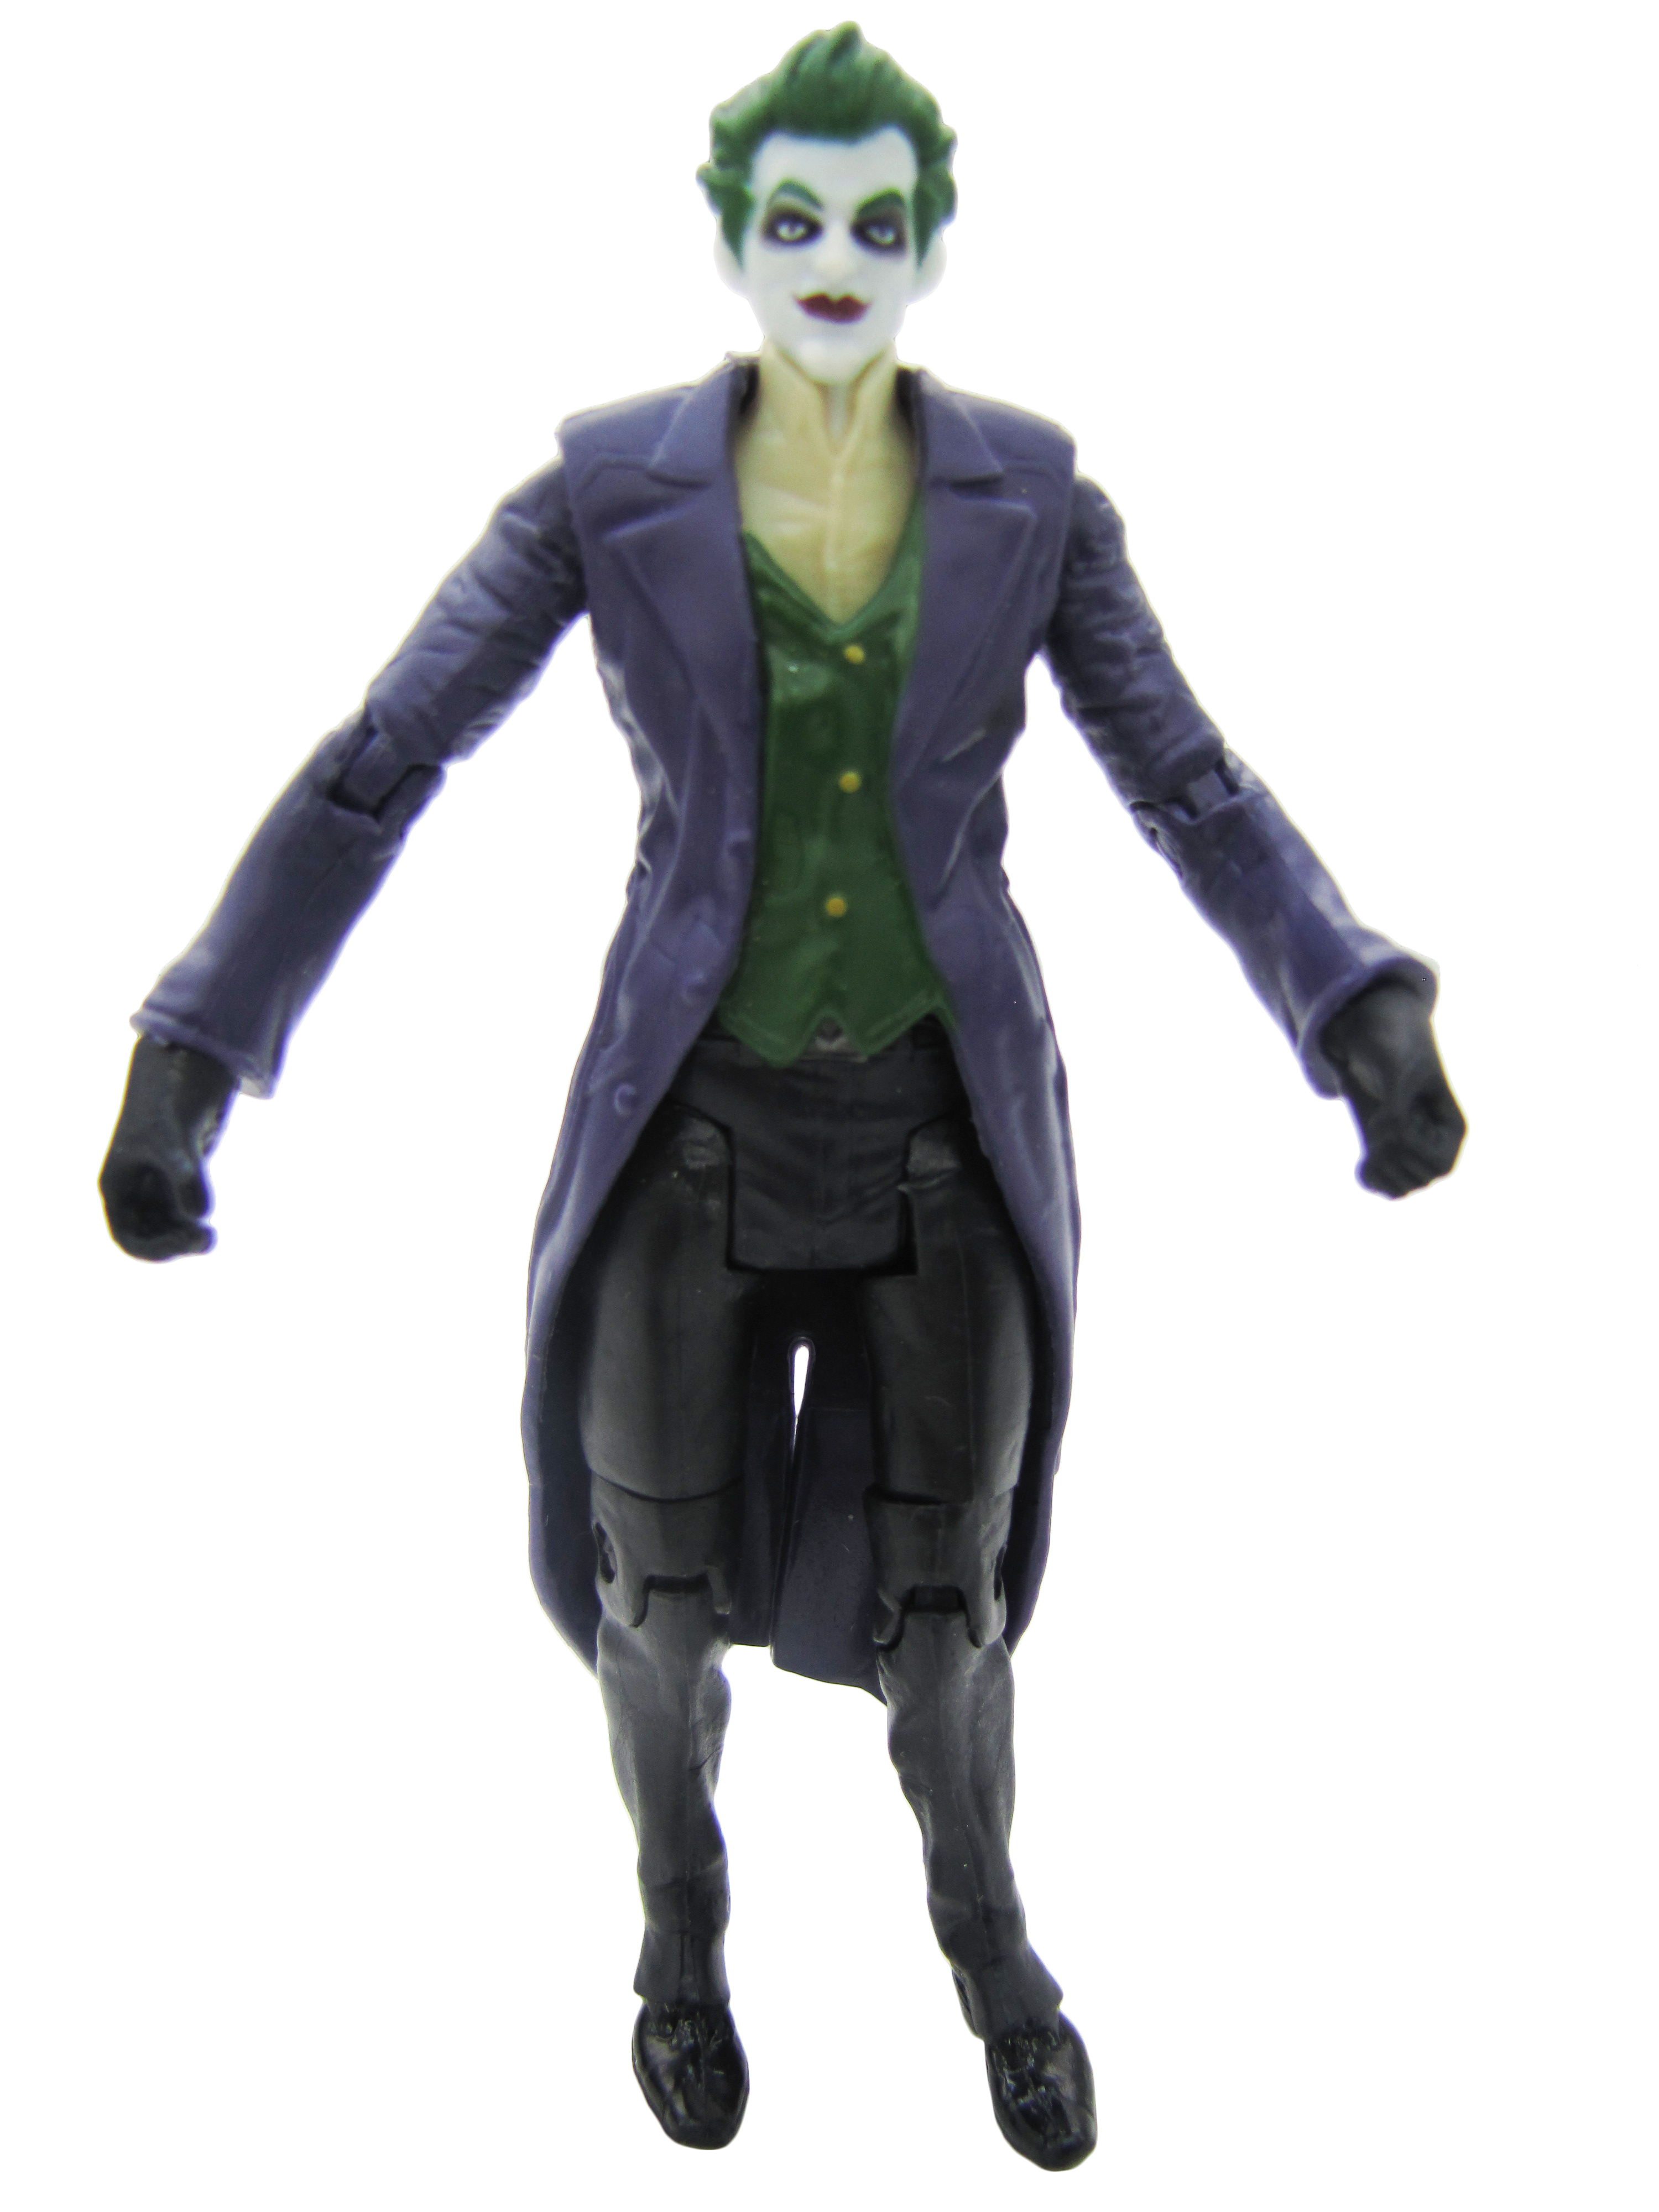 2014 Mattel DC Comics Multiverse Batman Arkham Origins THE JOKER Complete Mint